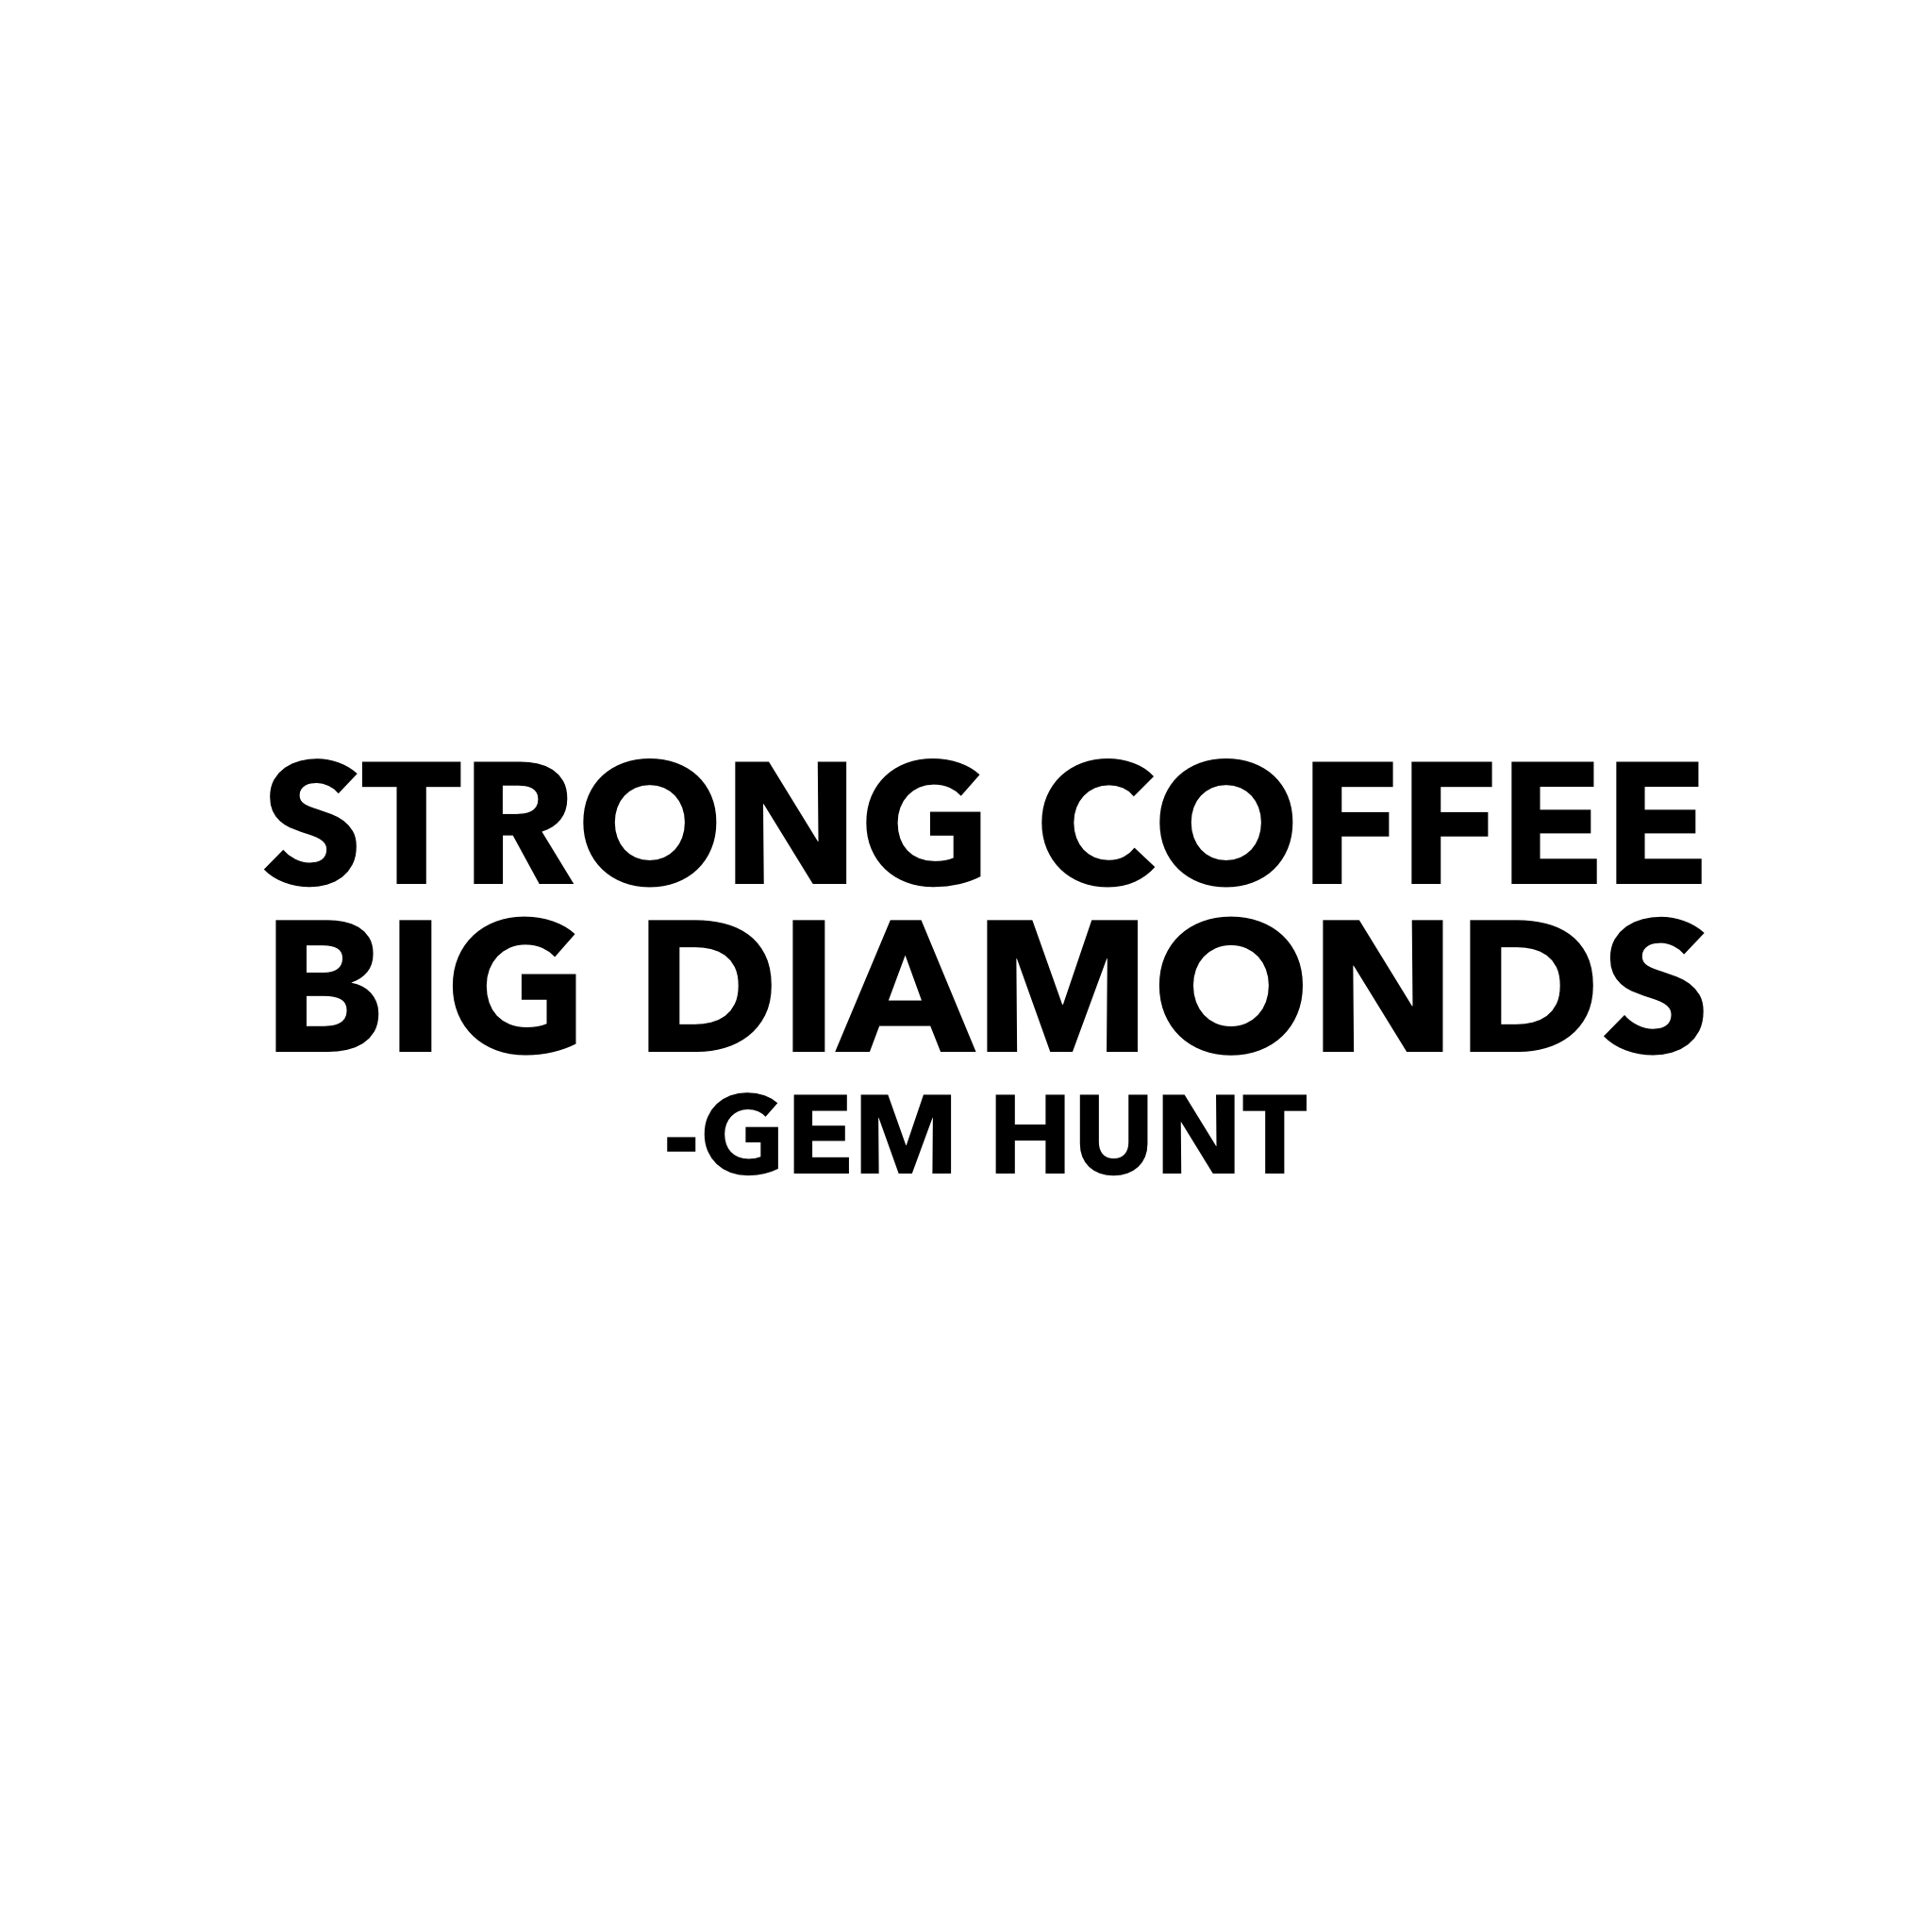 strong coffee big diamonds jewelry quote jewelry quotes gem